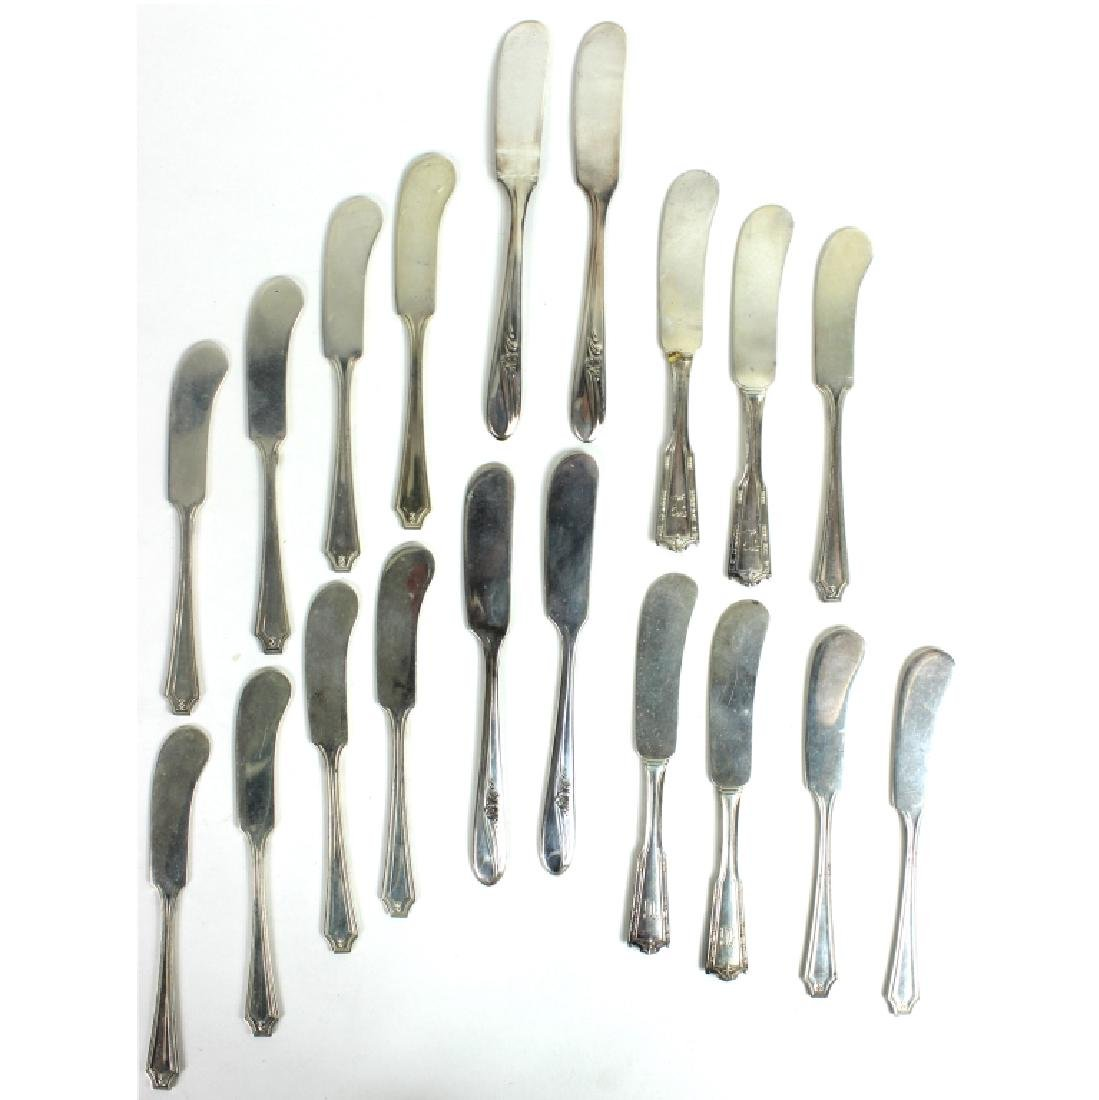 19) NINETEEN STERLING SILVER KNIVES, 13.96 OZT